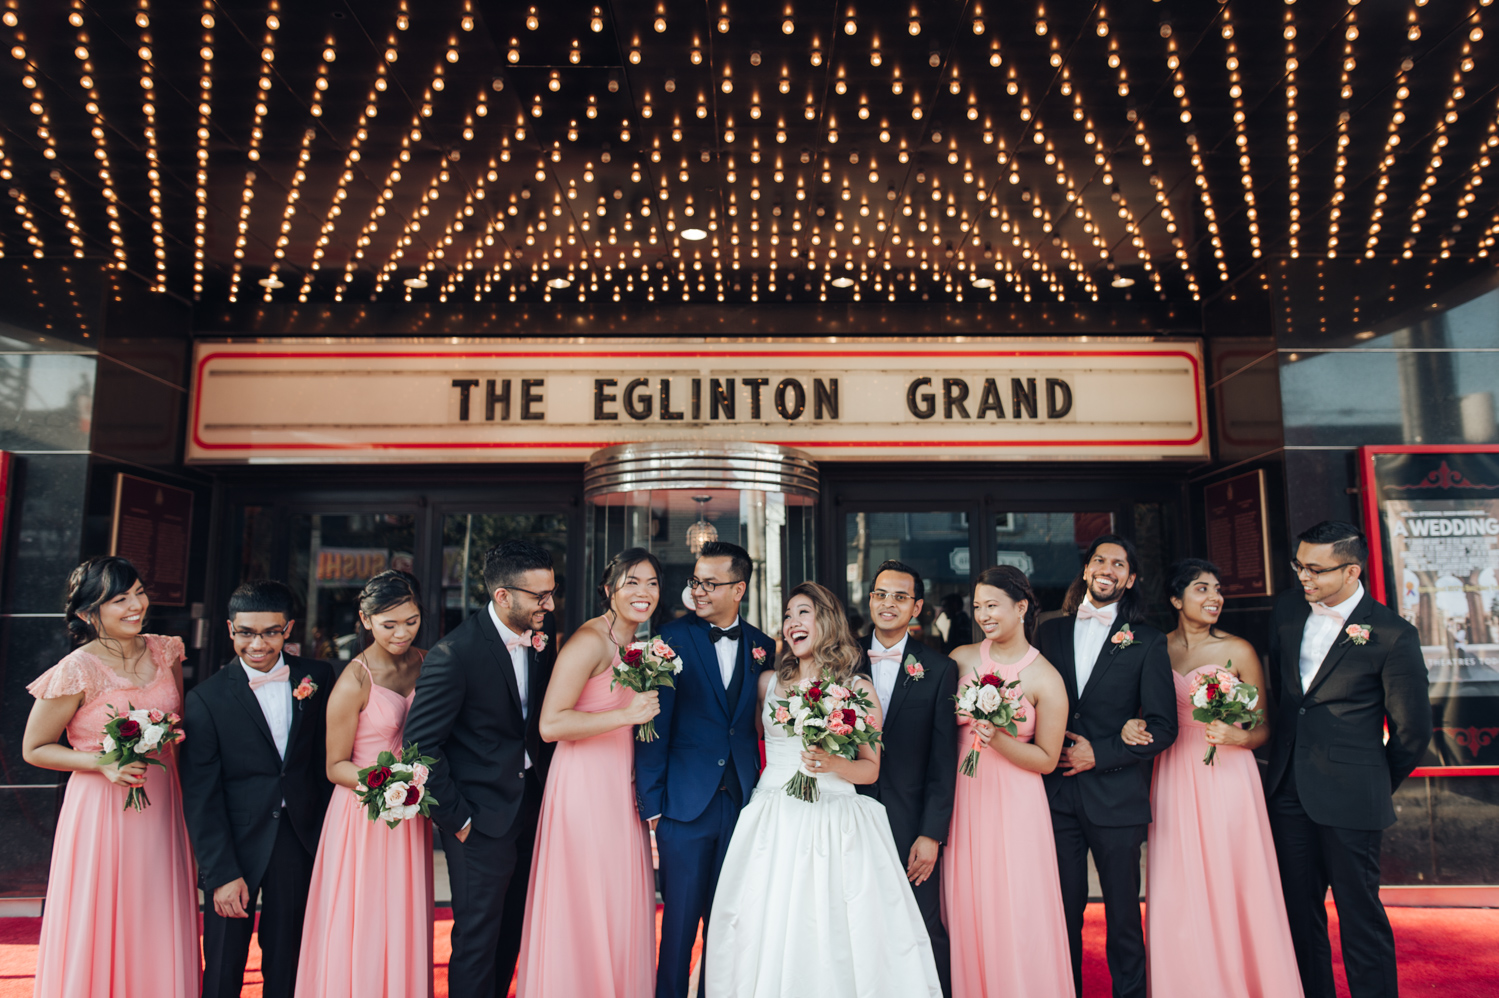 Toronto Eglinton Grand Theatre wedding party photo